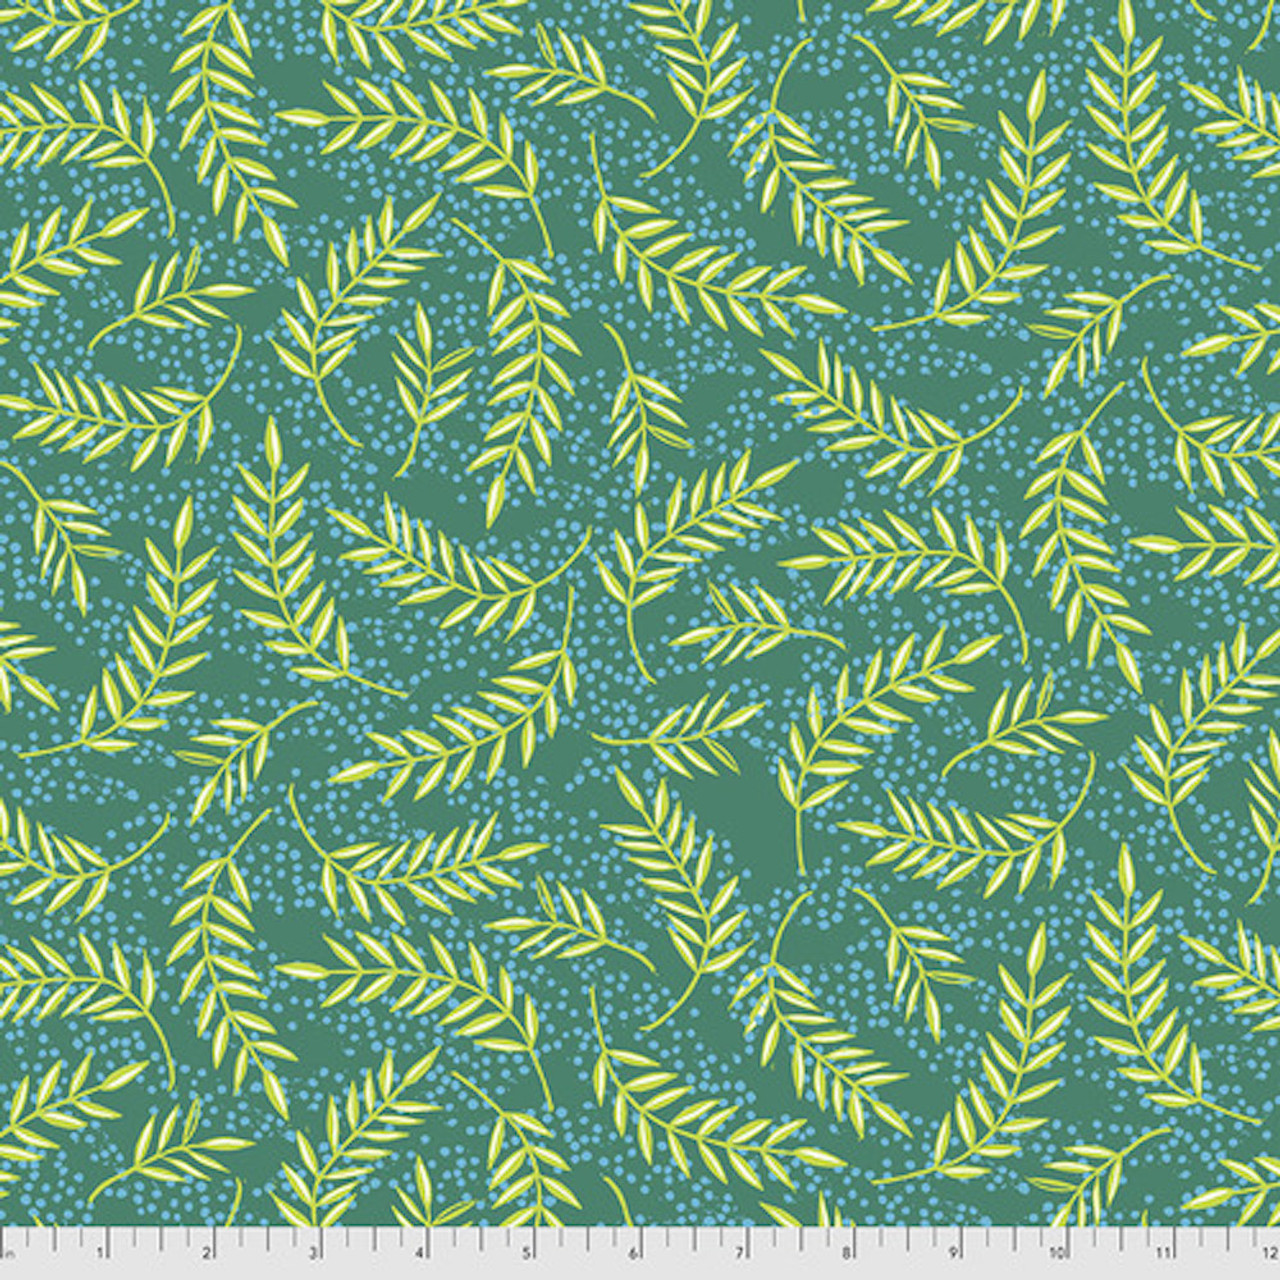 Free Spirit Valori Wells Enchanted Olive Branches Emerald Cotton Fabric By The Yard